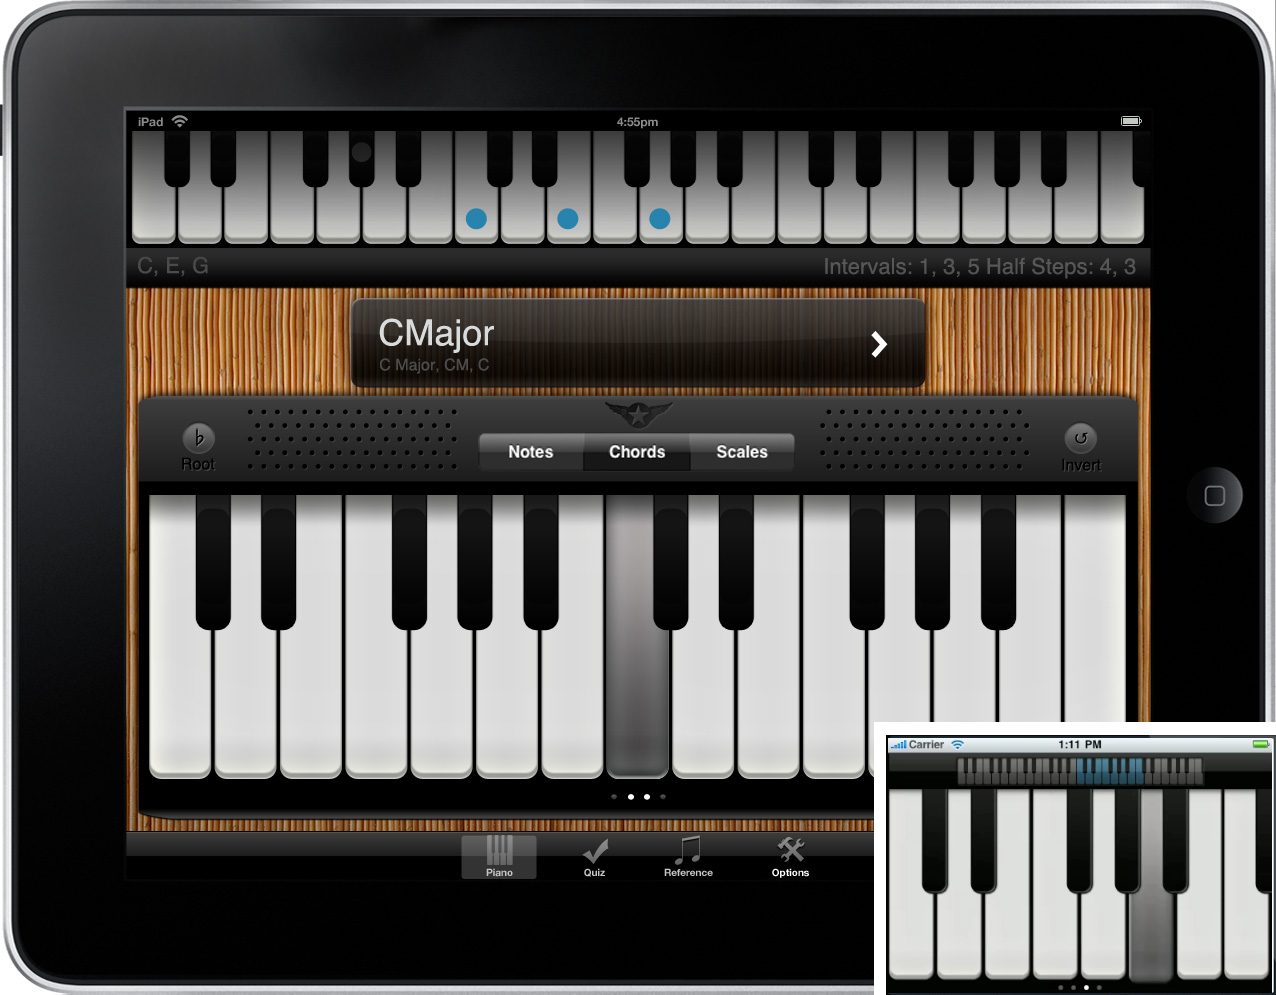 Image of the Nota piano training application for the Apple iPad.